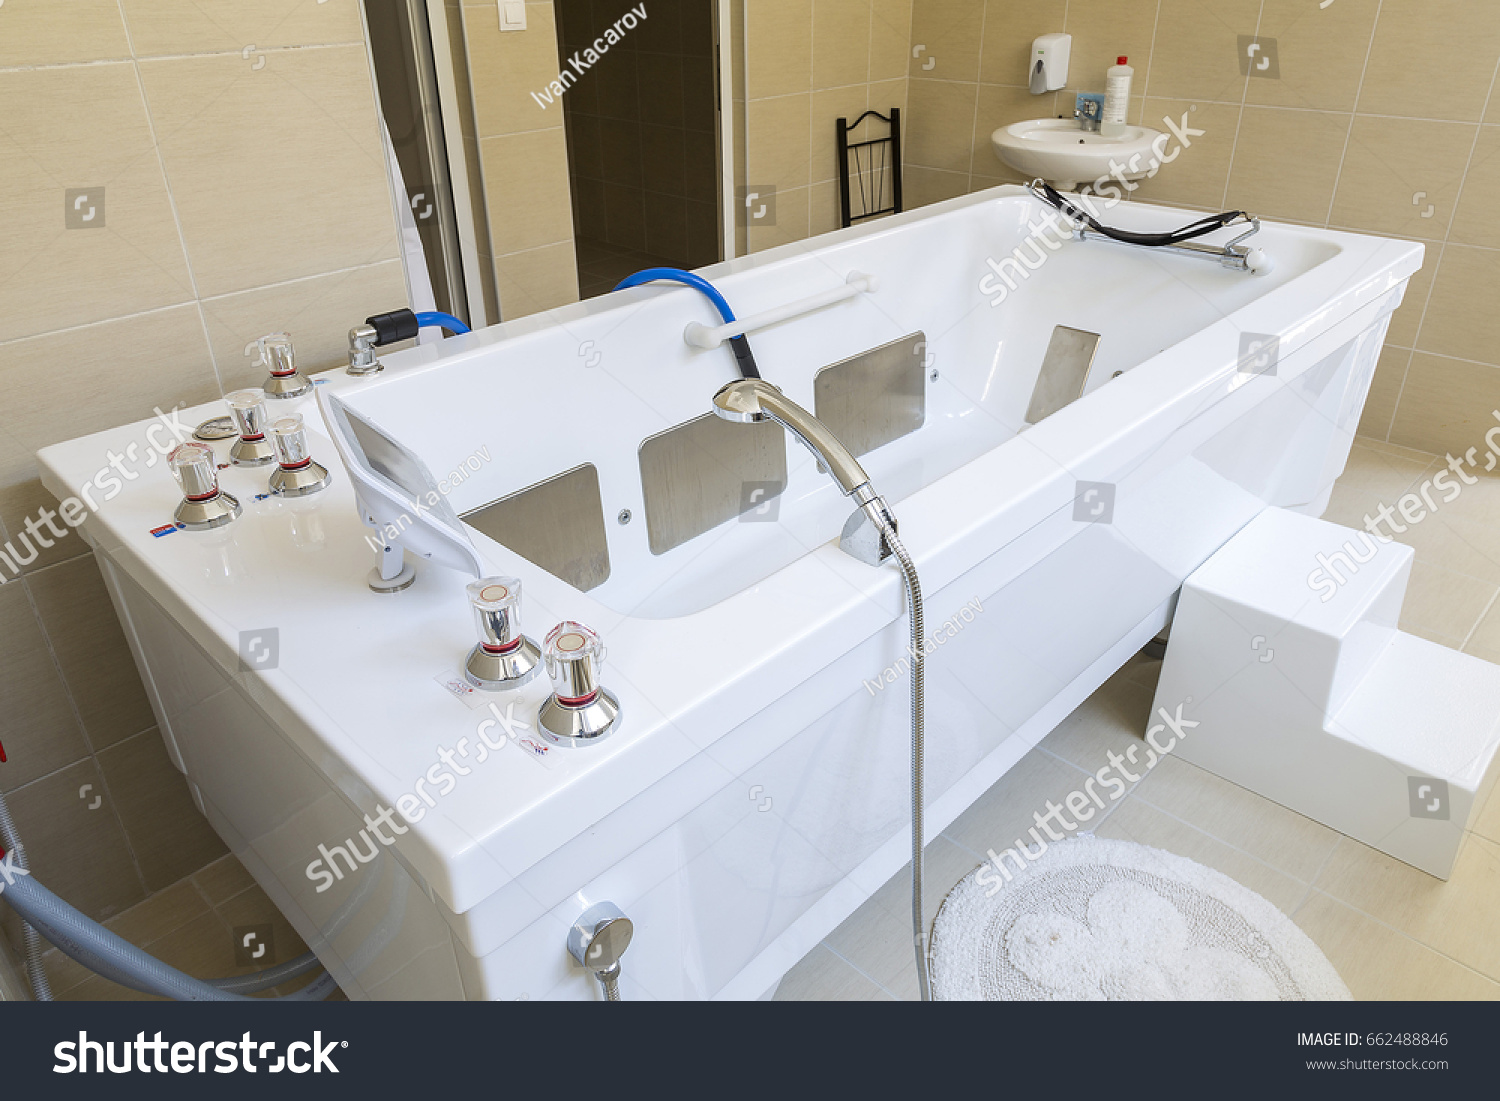 Bathtub for procedures with water in a medical and healing center ...